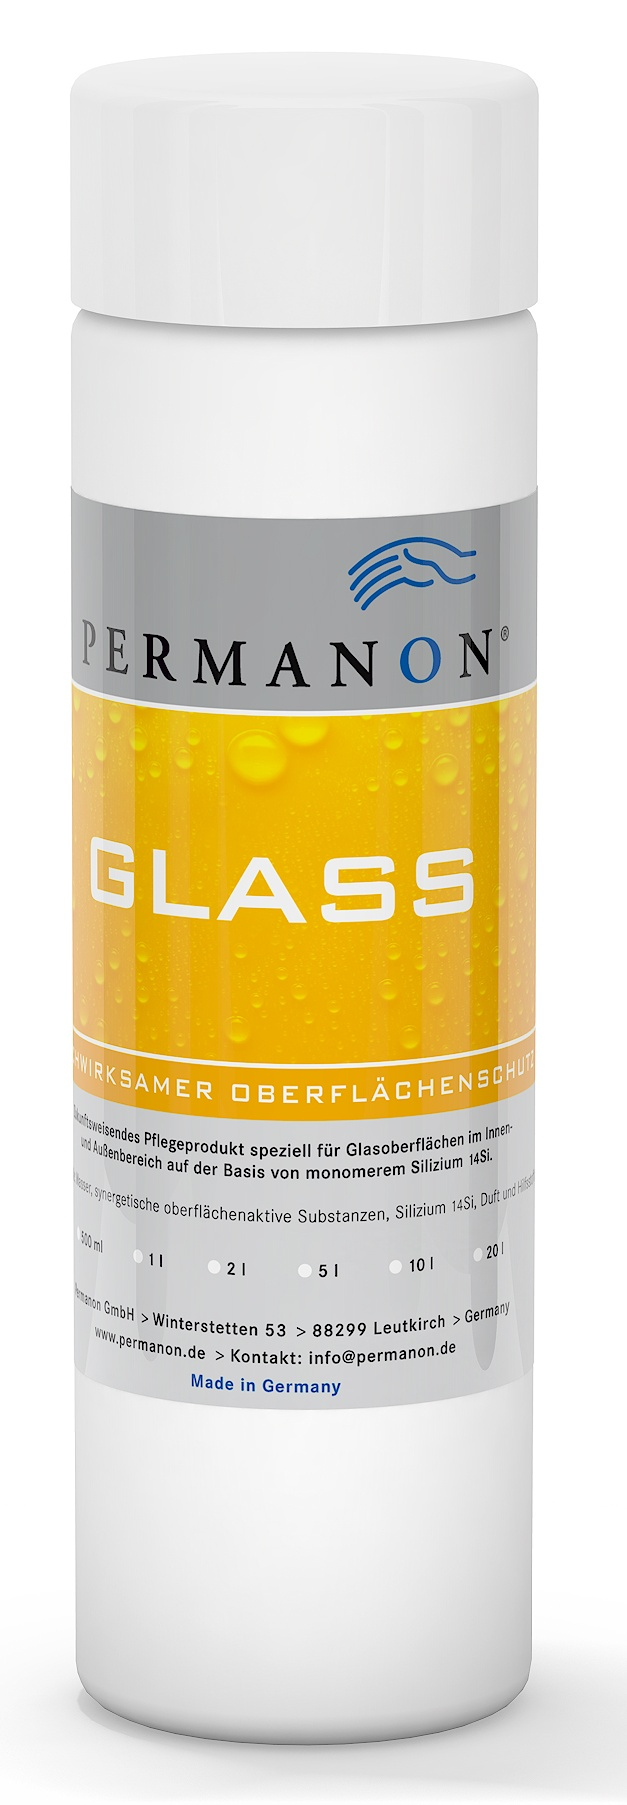 glass-permanon.jpg